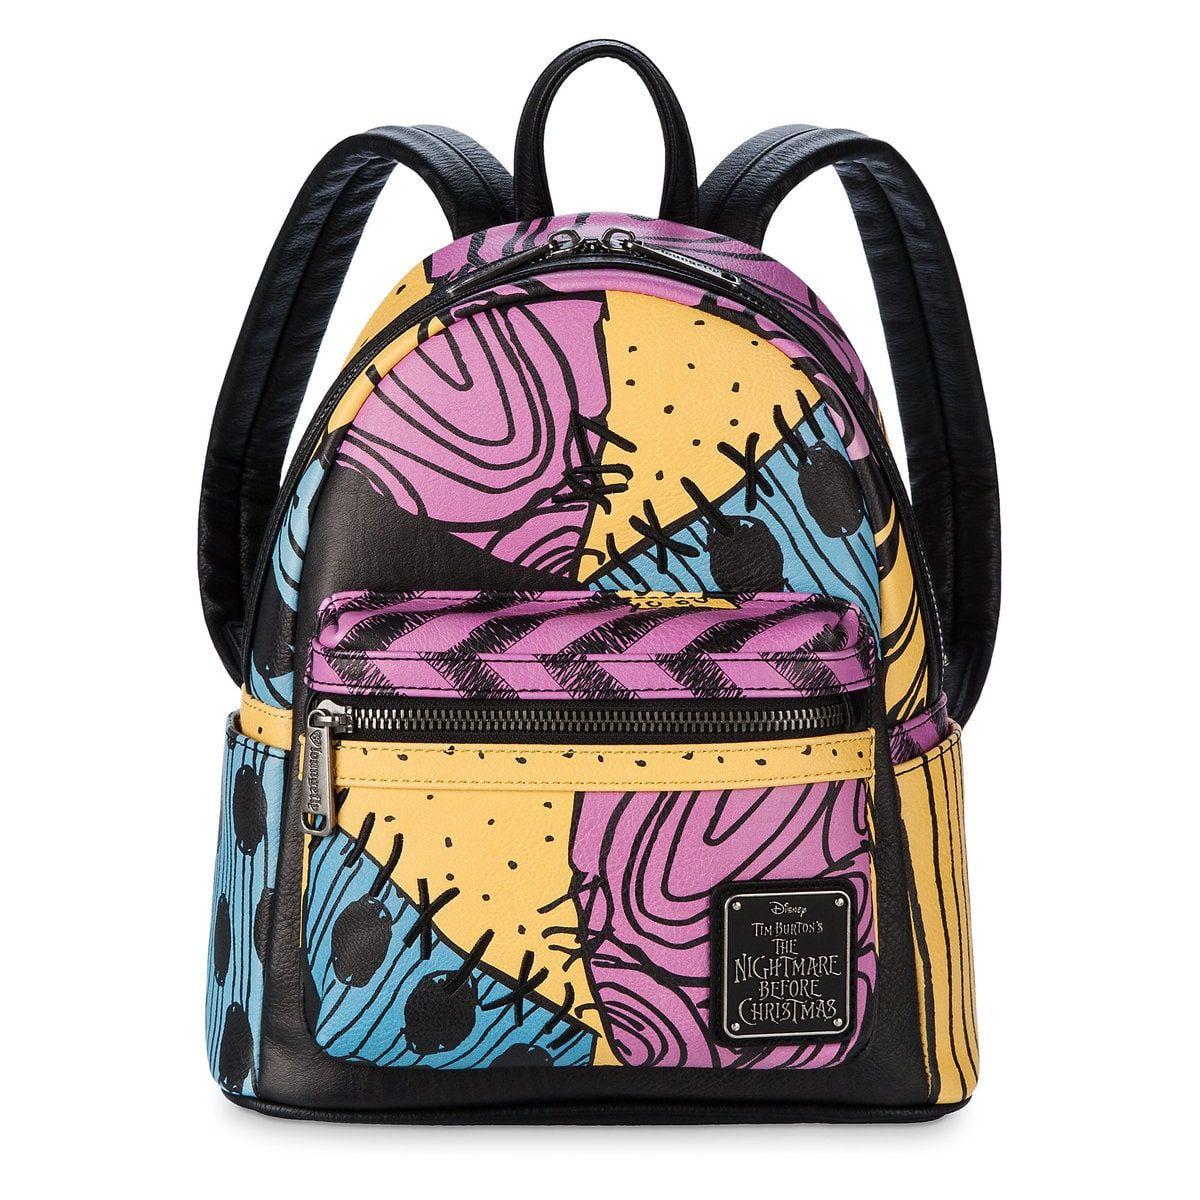 71bb4452ee18 ... Disney bags from Loungefly. Sally Mini Backpack by Loungefly - Tim  Burton s The Nightmare Before Christmas